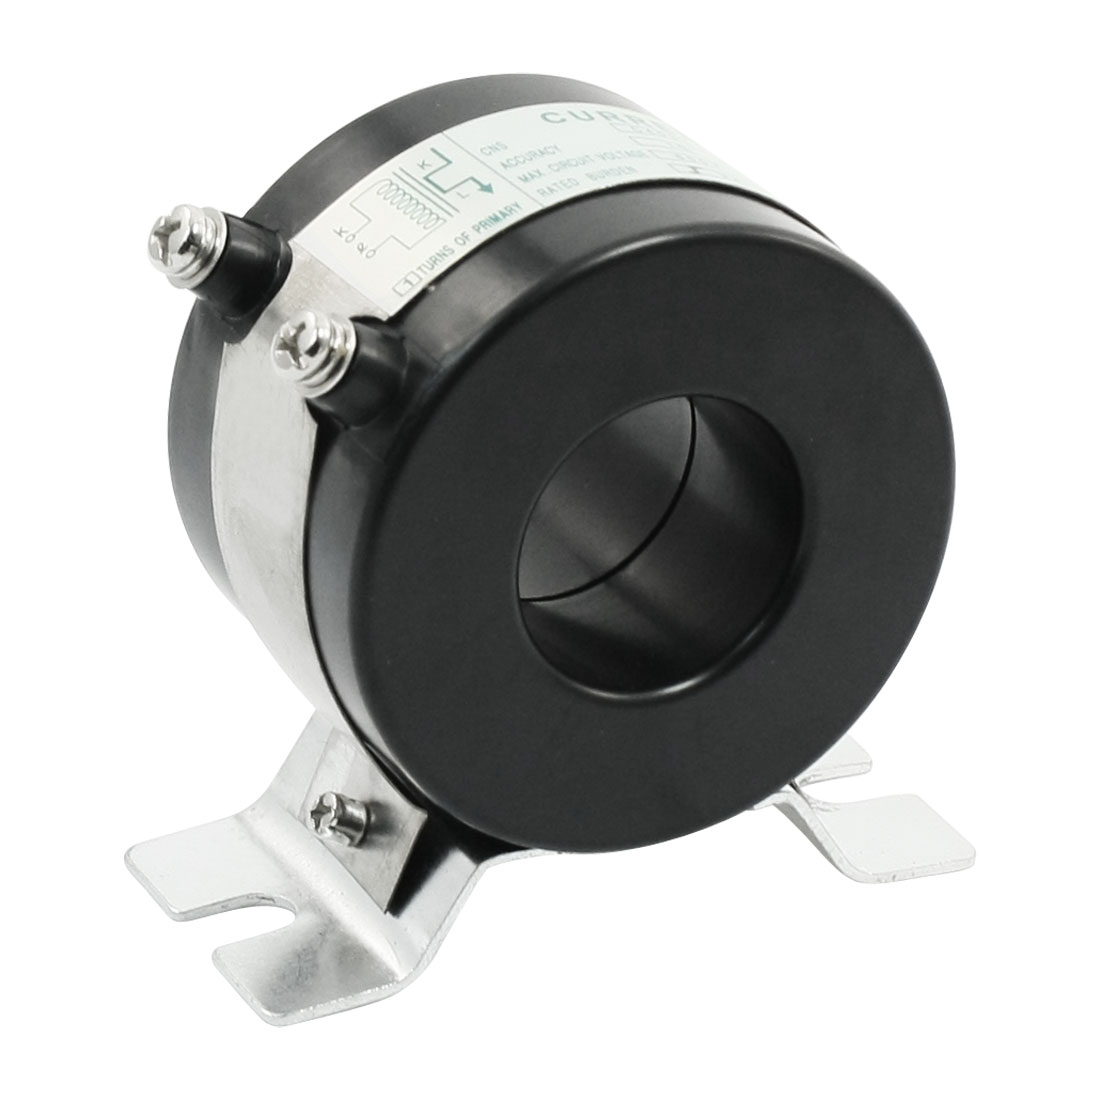 0.01 Class 1T 50/5 Ratio CT Current Transformer RCT-35 Black